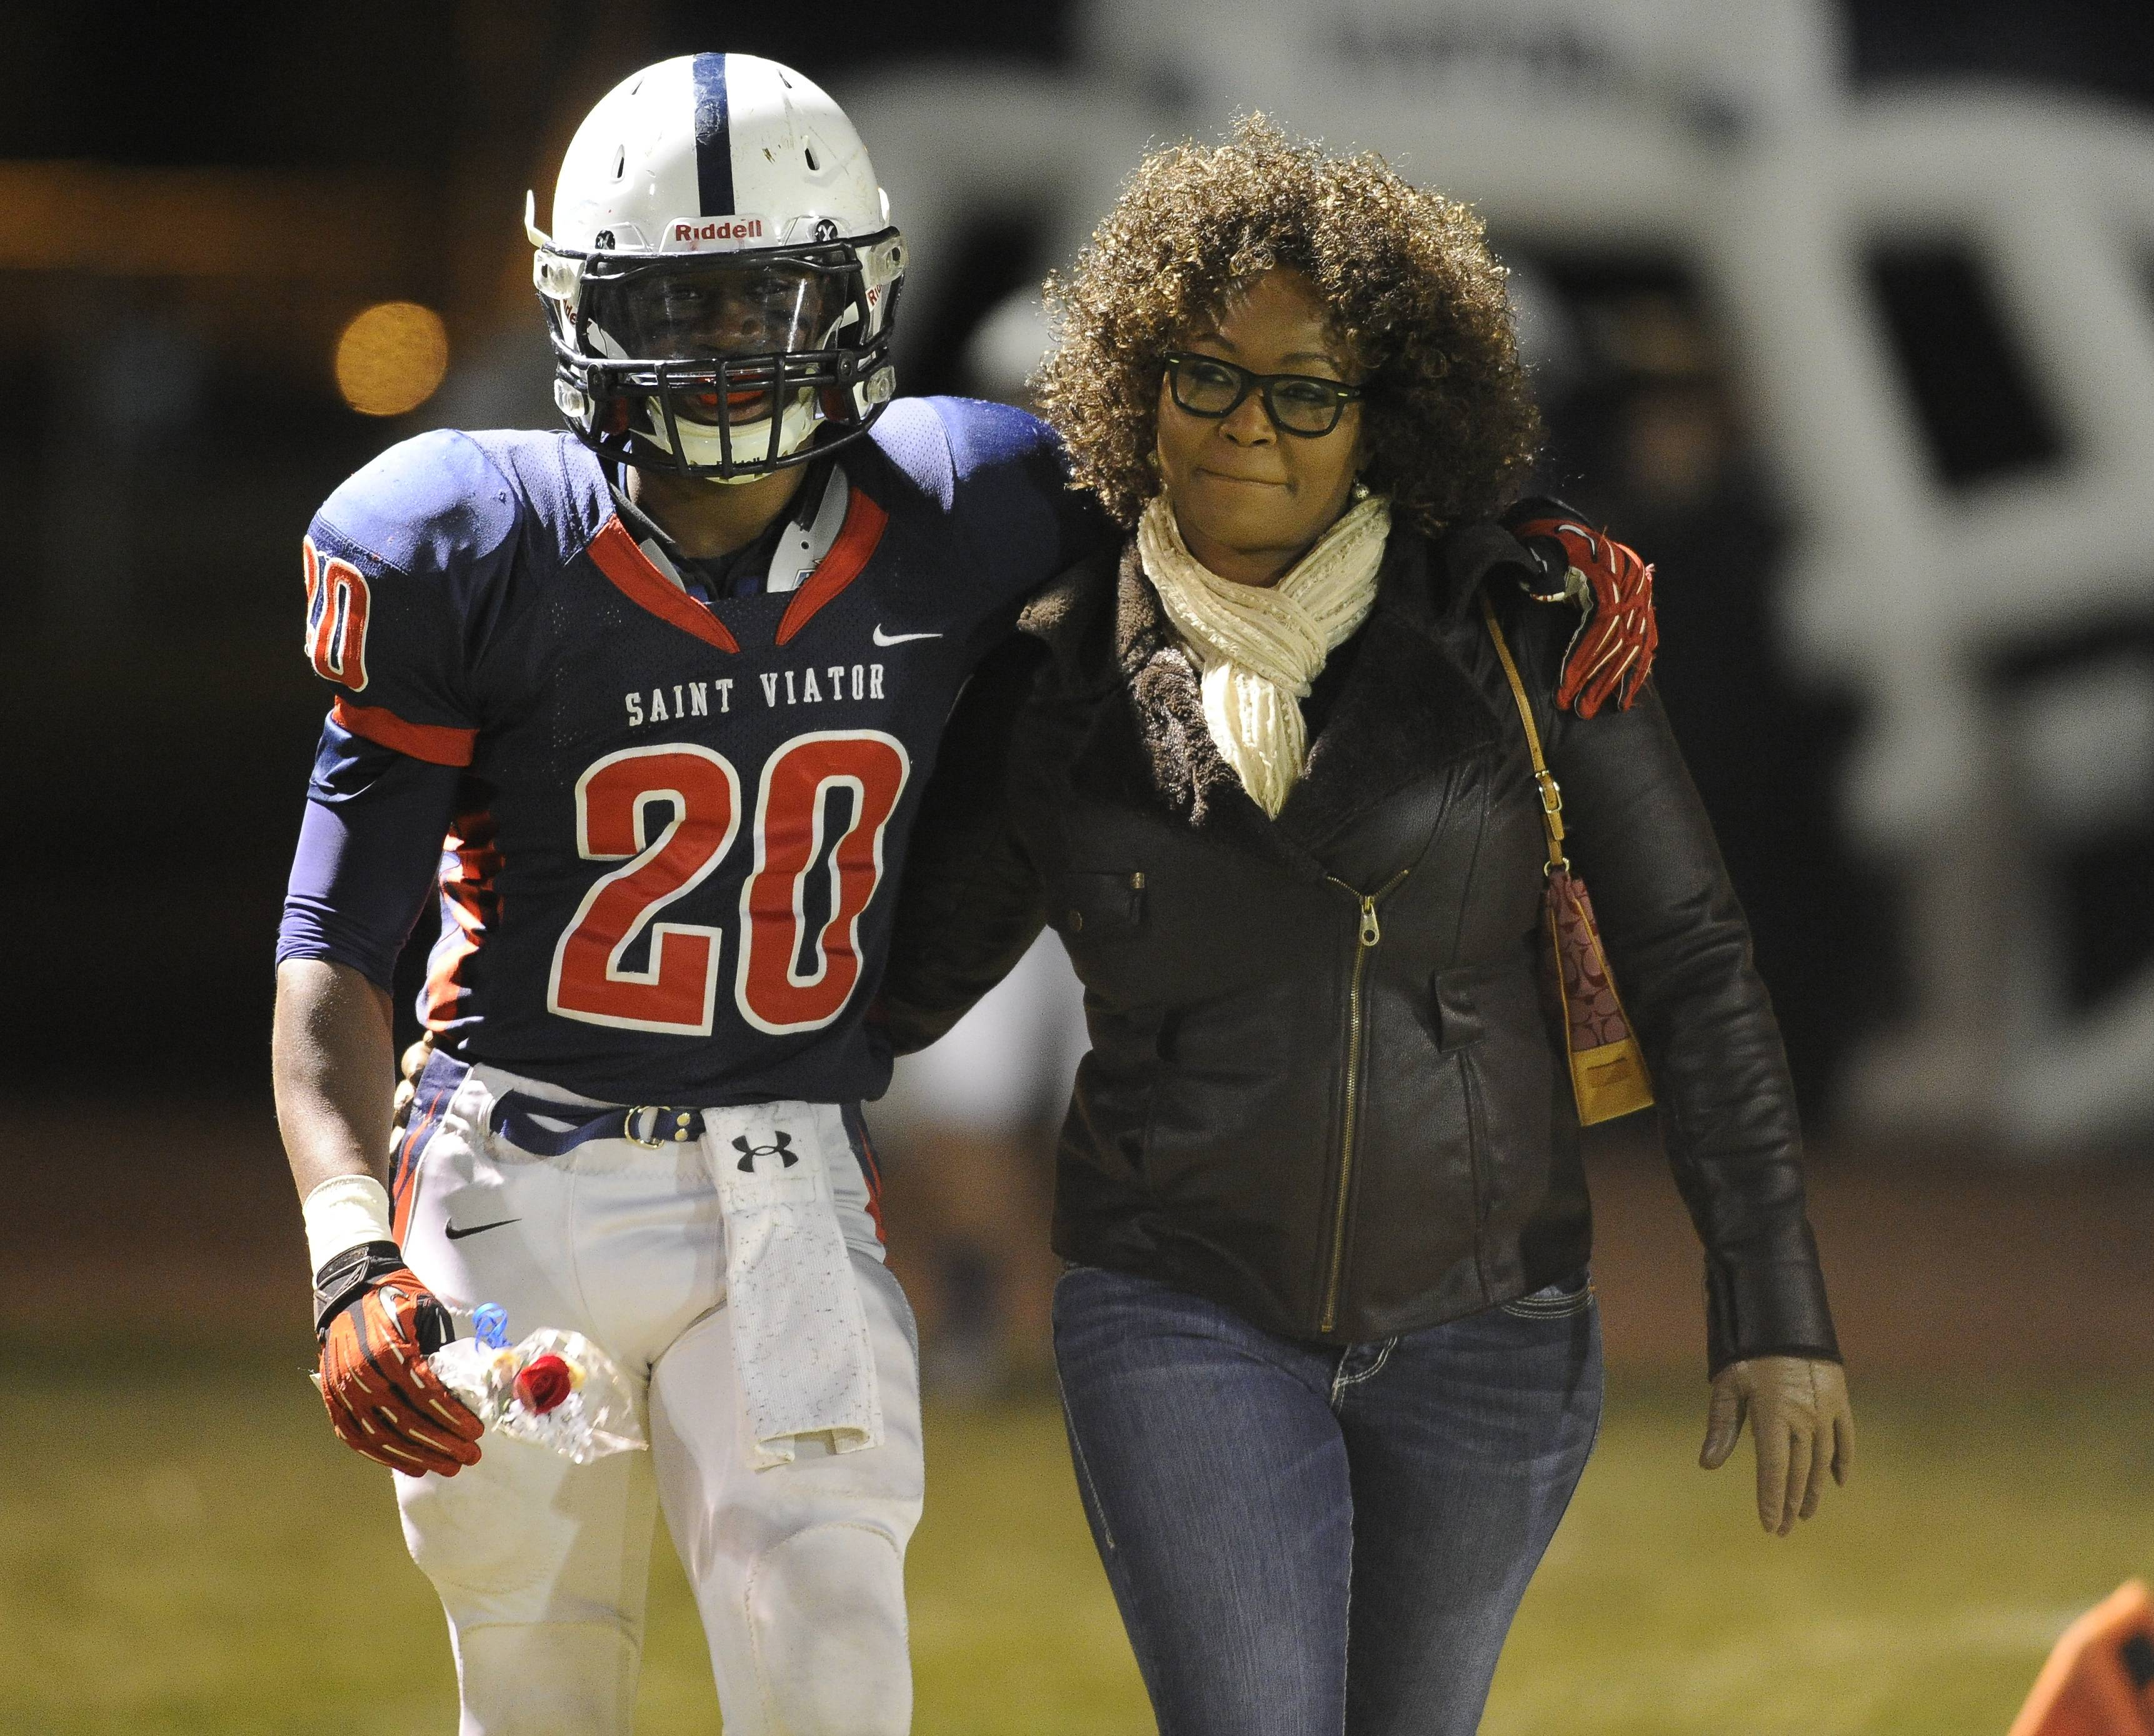 Images: St. Viator beats Marian Catholic